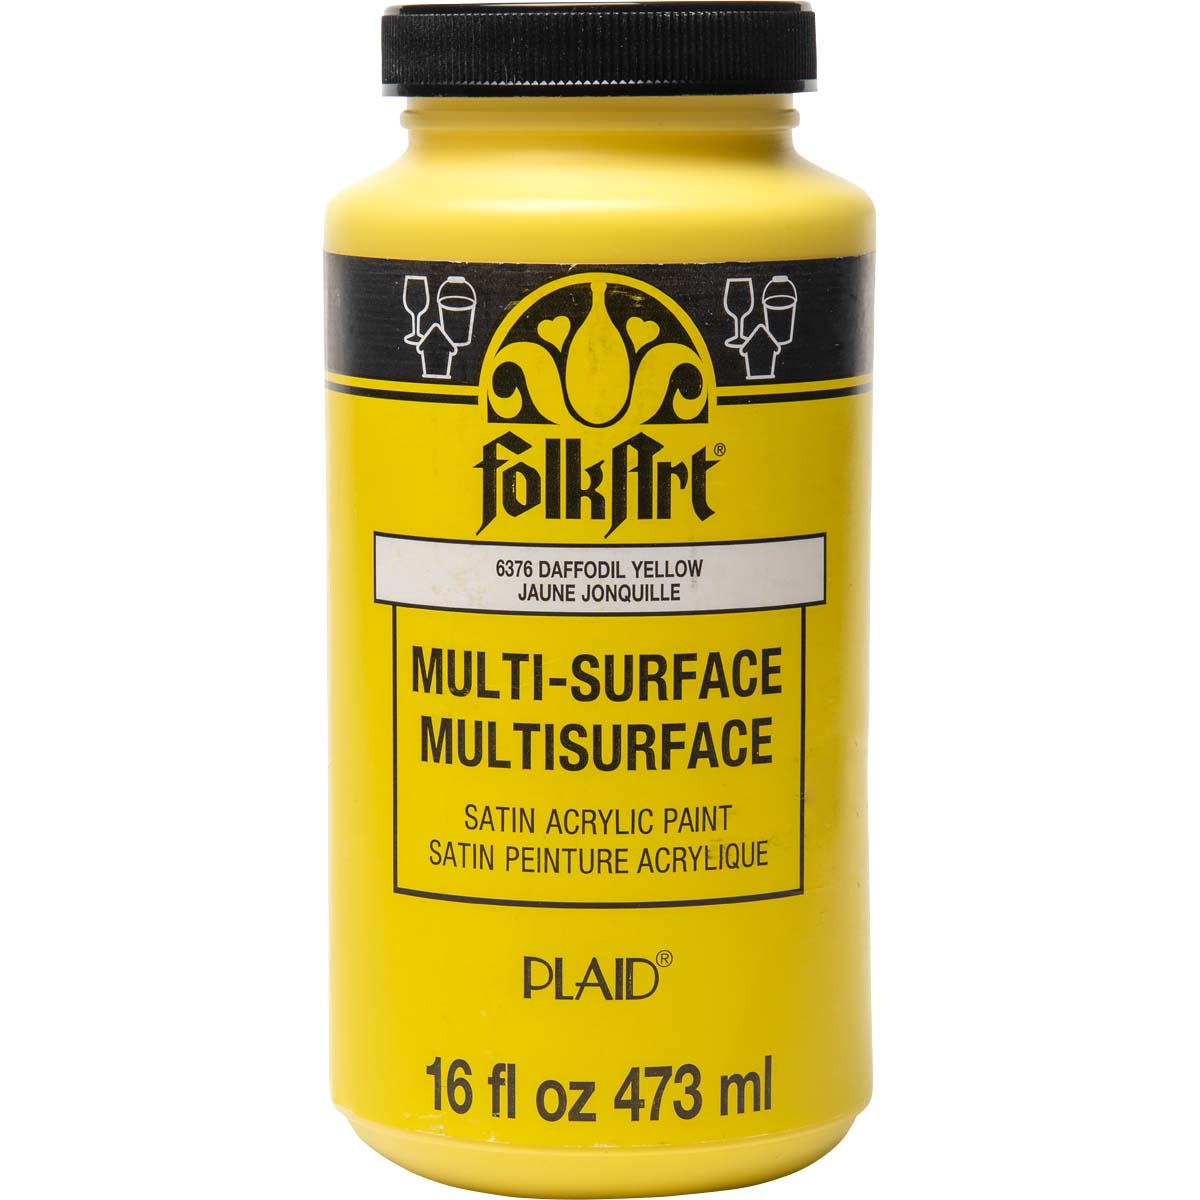 FolkArt ® Multi-Surface Satin Acrylic Paints - Daffodil Yellow, 16 oz. - 6376